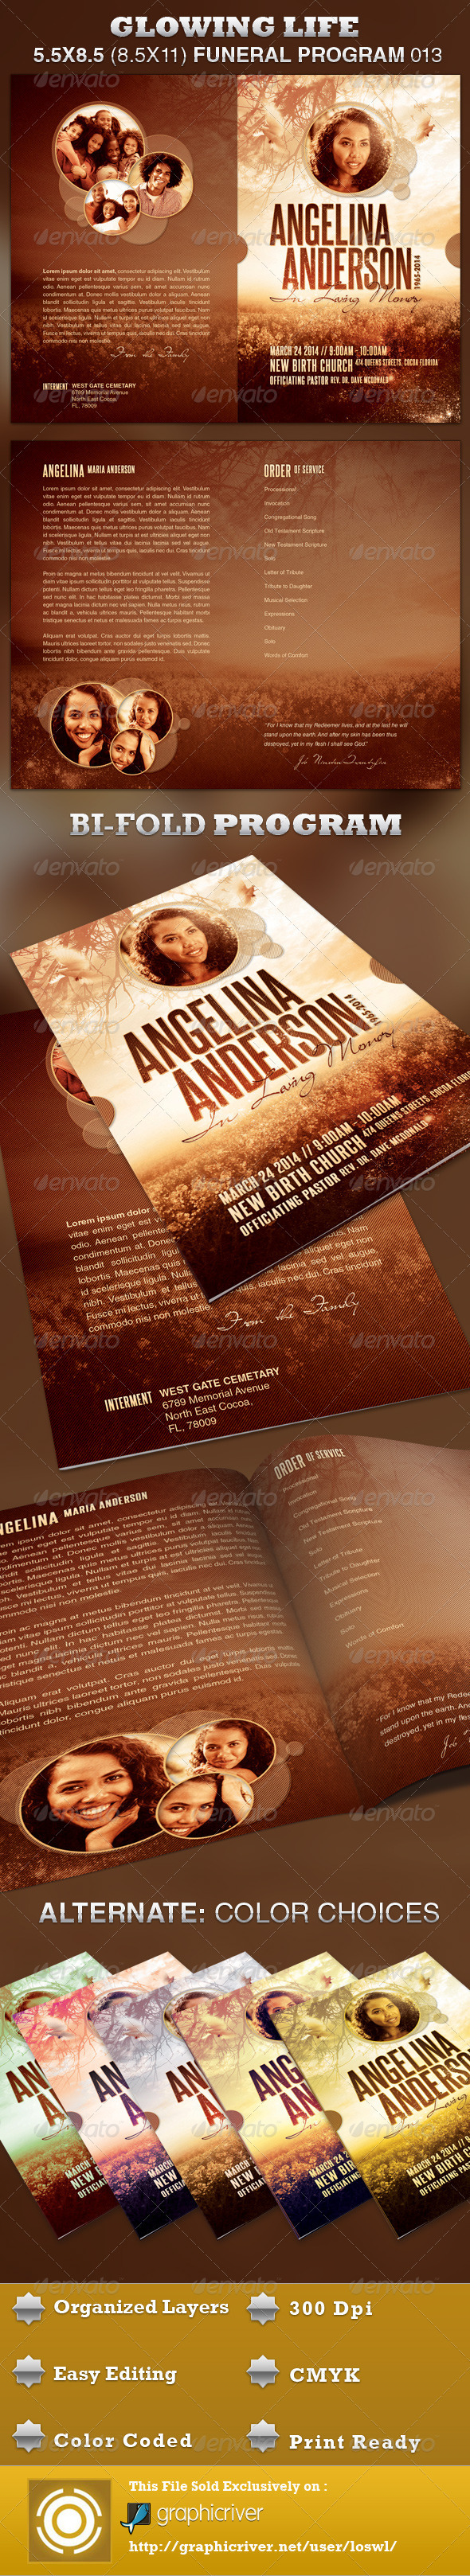 GraphicRiver Glowing Life Funeral Program Template 013 3996908